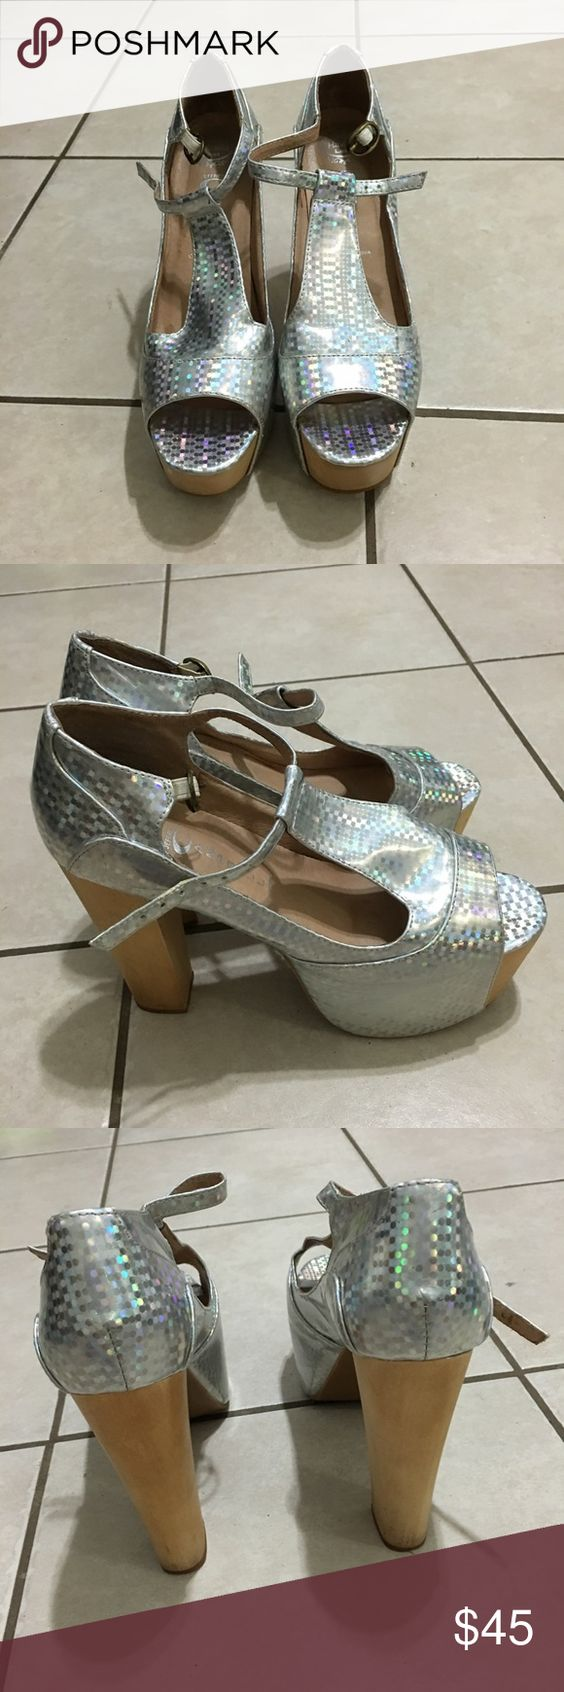 Jeffrey Campbell Open shoes sandals size 6.5 Color a little bit fading, some scratches or marks, need a little cleaning, still in great condition Jeffrey Campbell Shoes Wedges